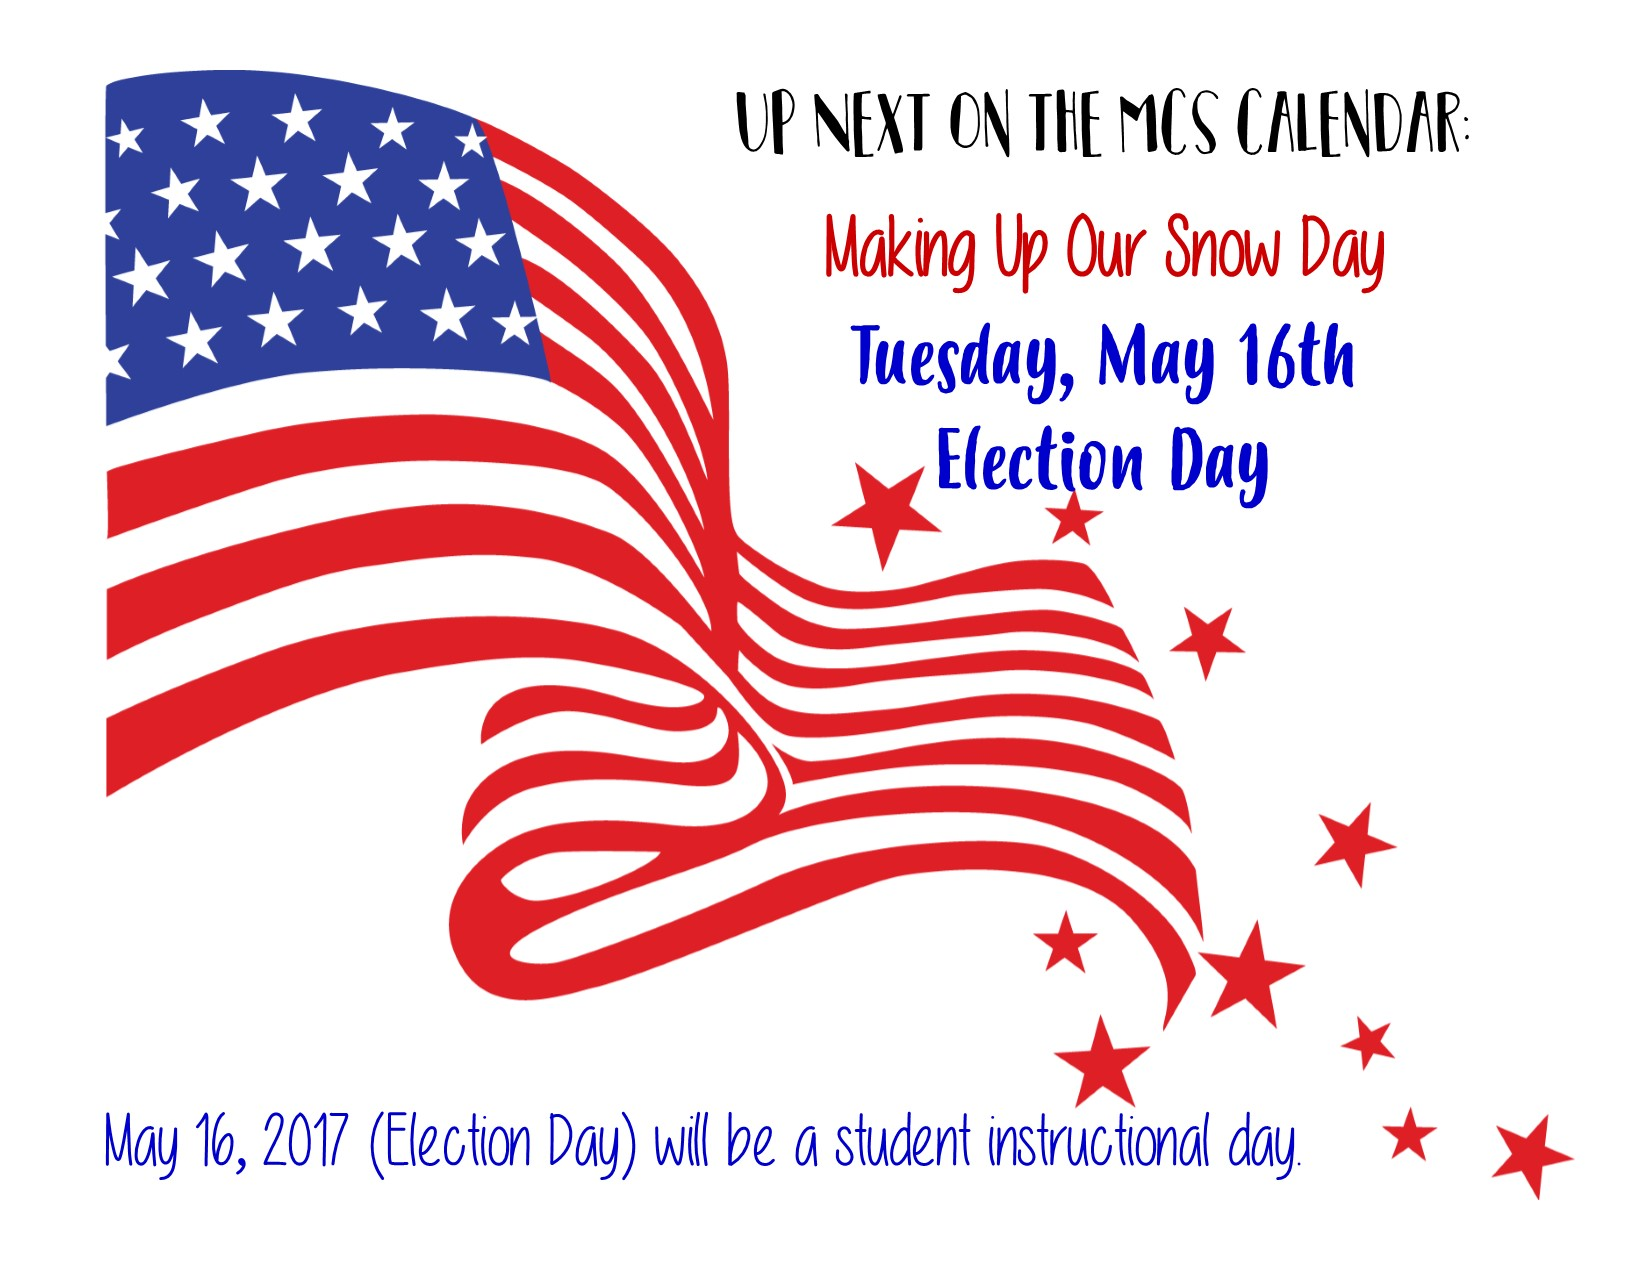 May 16, 2017 (Election Day) will be a student instructional day.